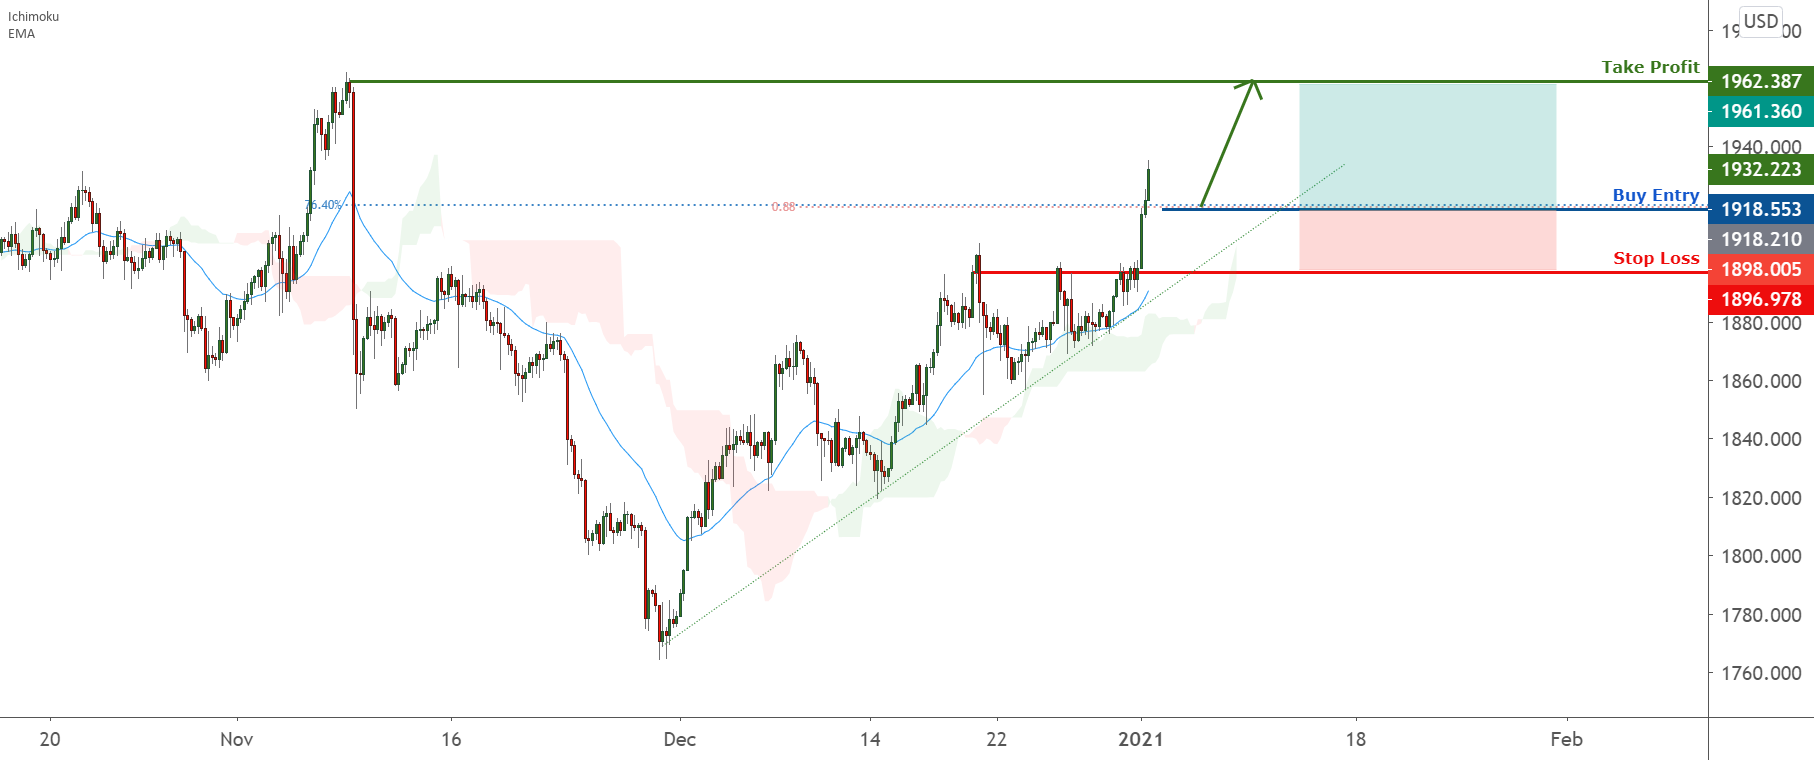 XAUUSD could bounce further towards 1962. EMA and trendline are for OANDA:XAUUSD by FXCM